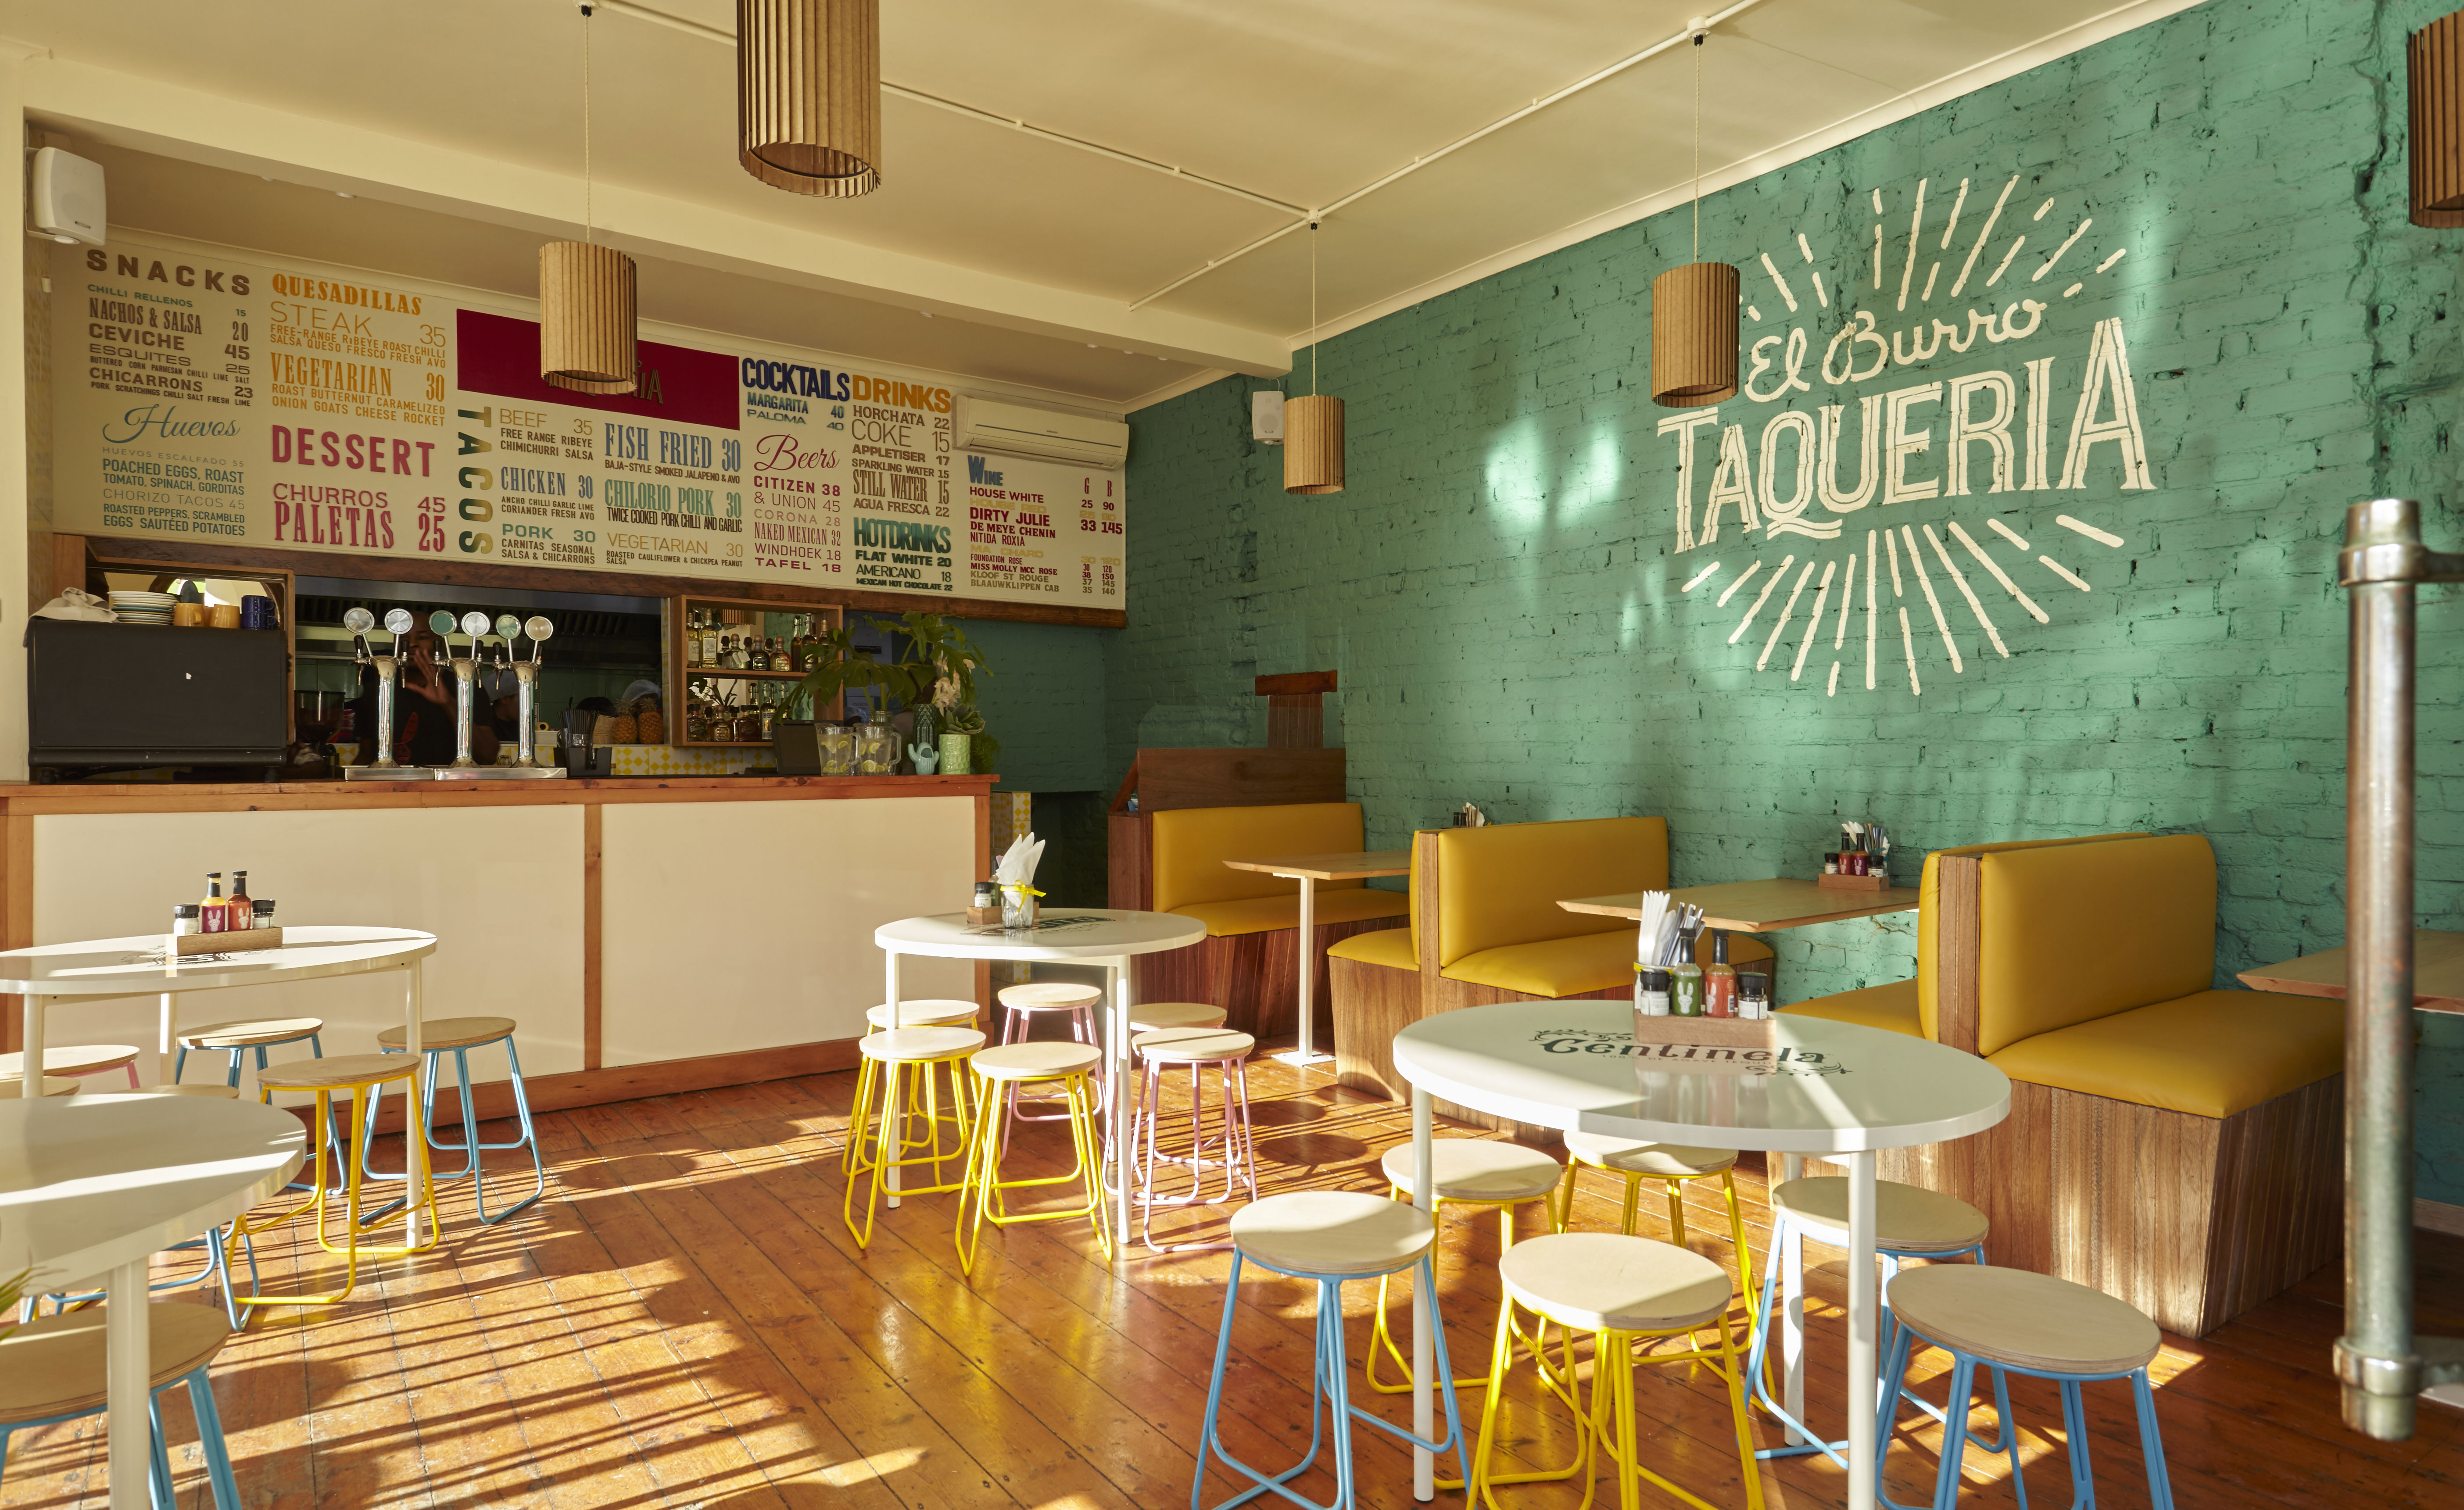 Muebles Para Una Cafeteria El Burro Taqueria Restaurant Review Cape Town South